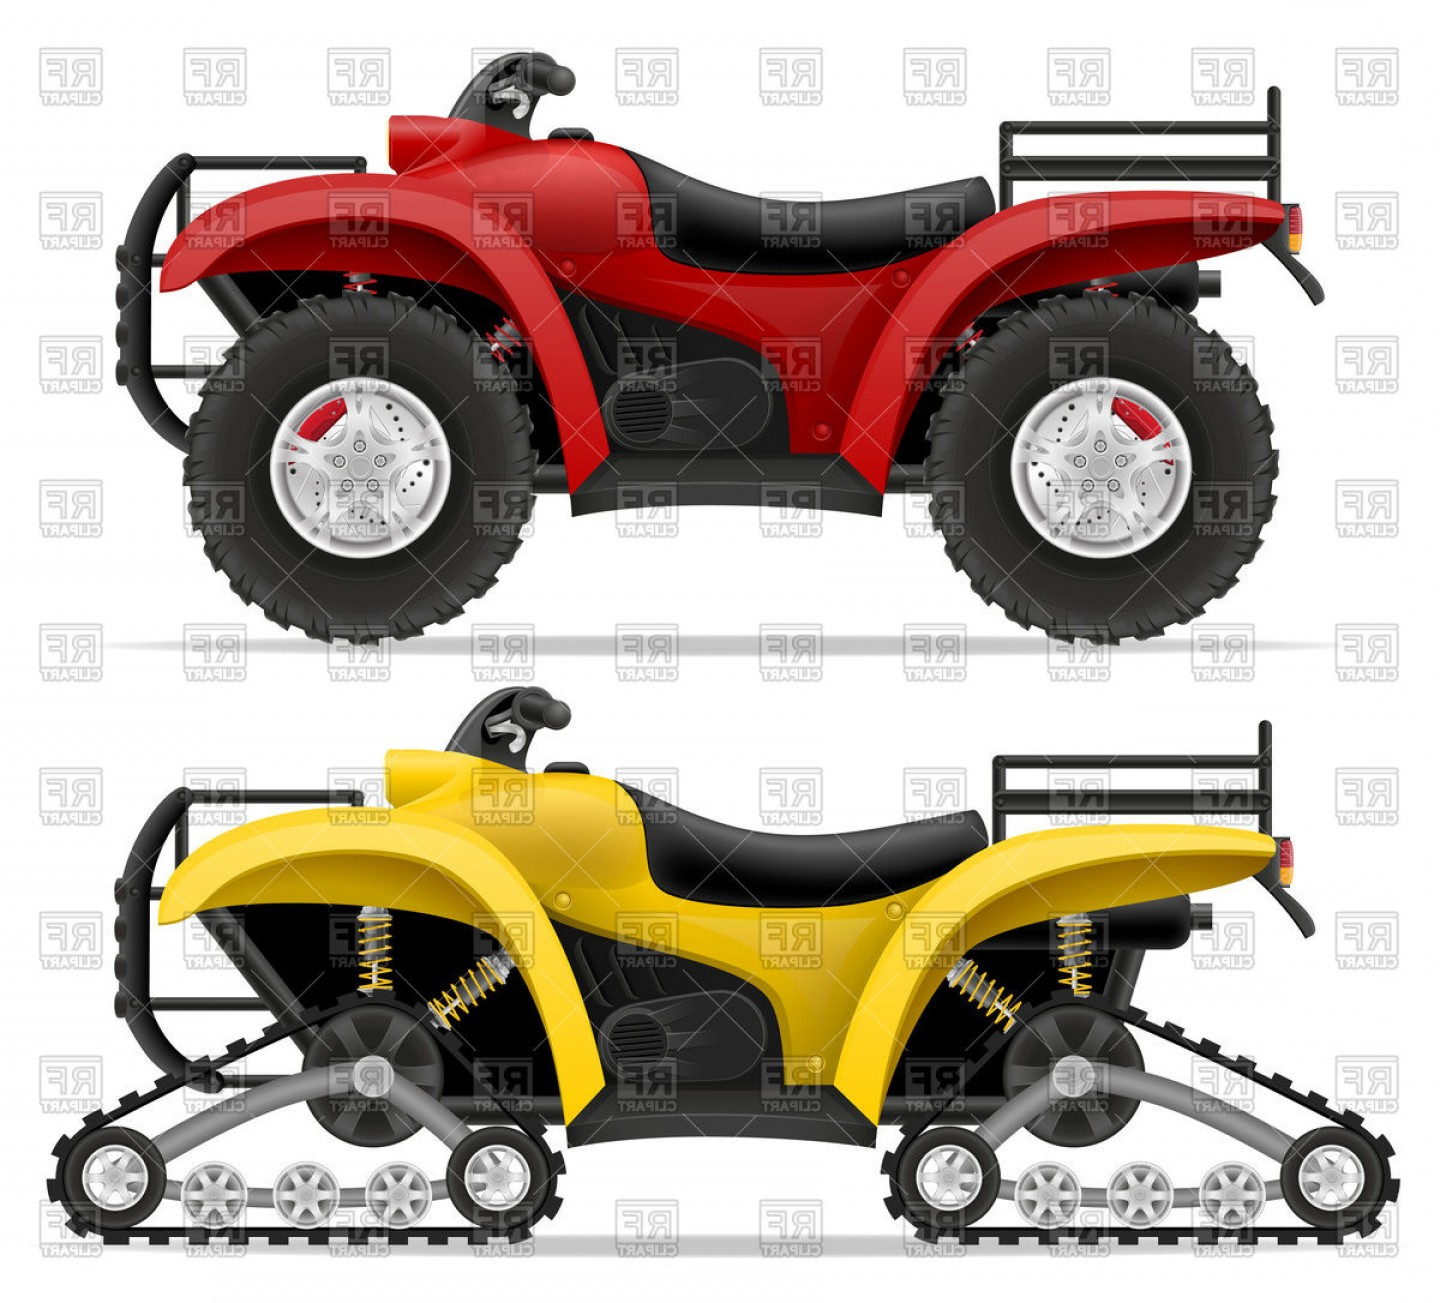 ATV Vector Clip Art: Track Type And Four Wheel All Terrain Vehicle Atv Vector Clipart